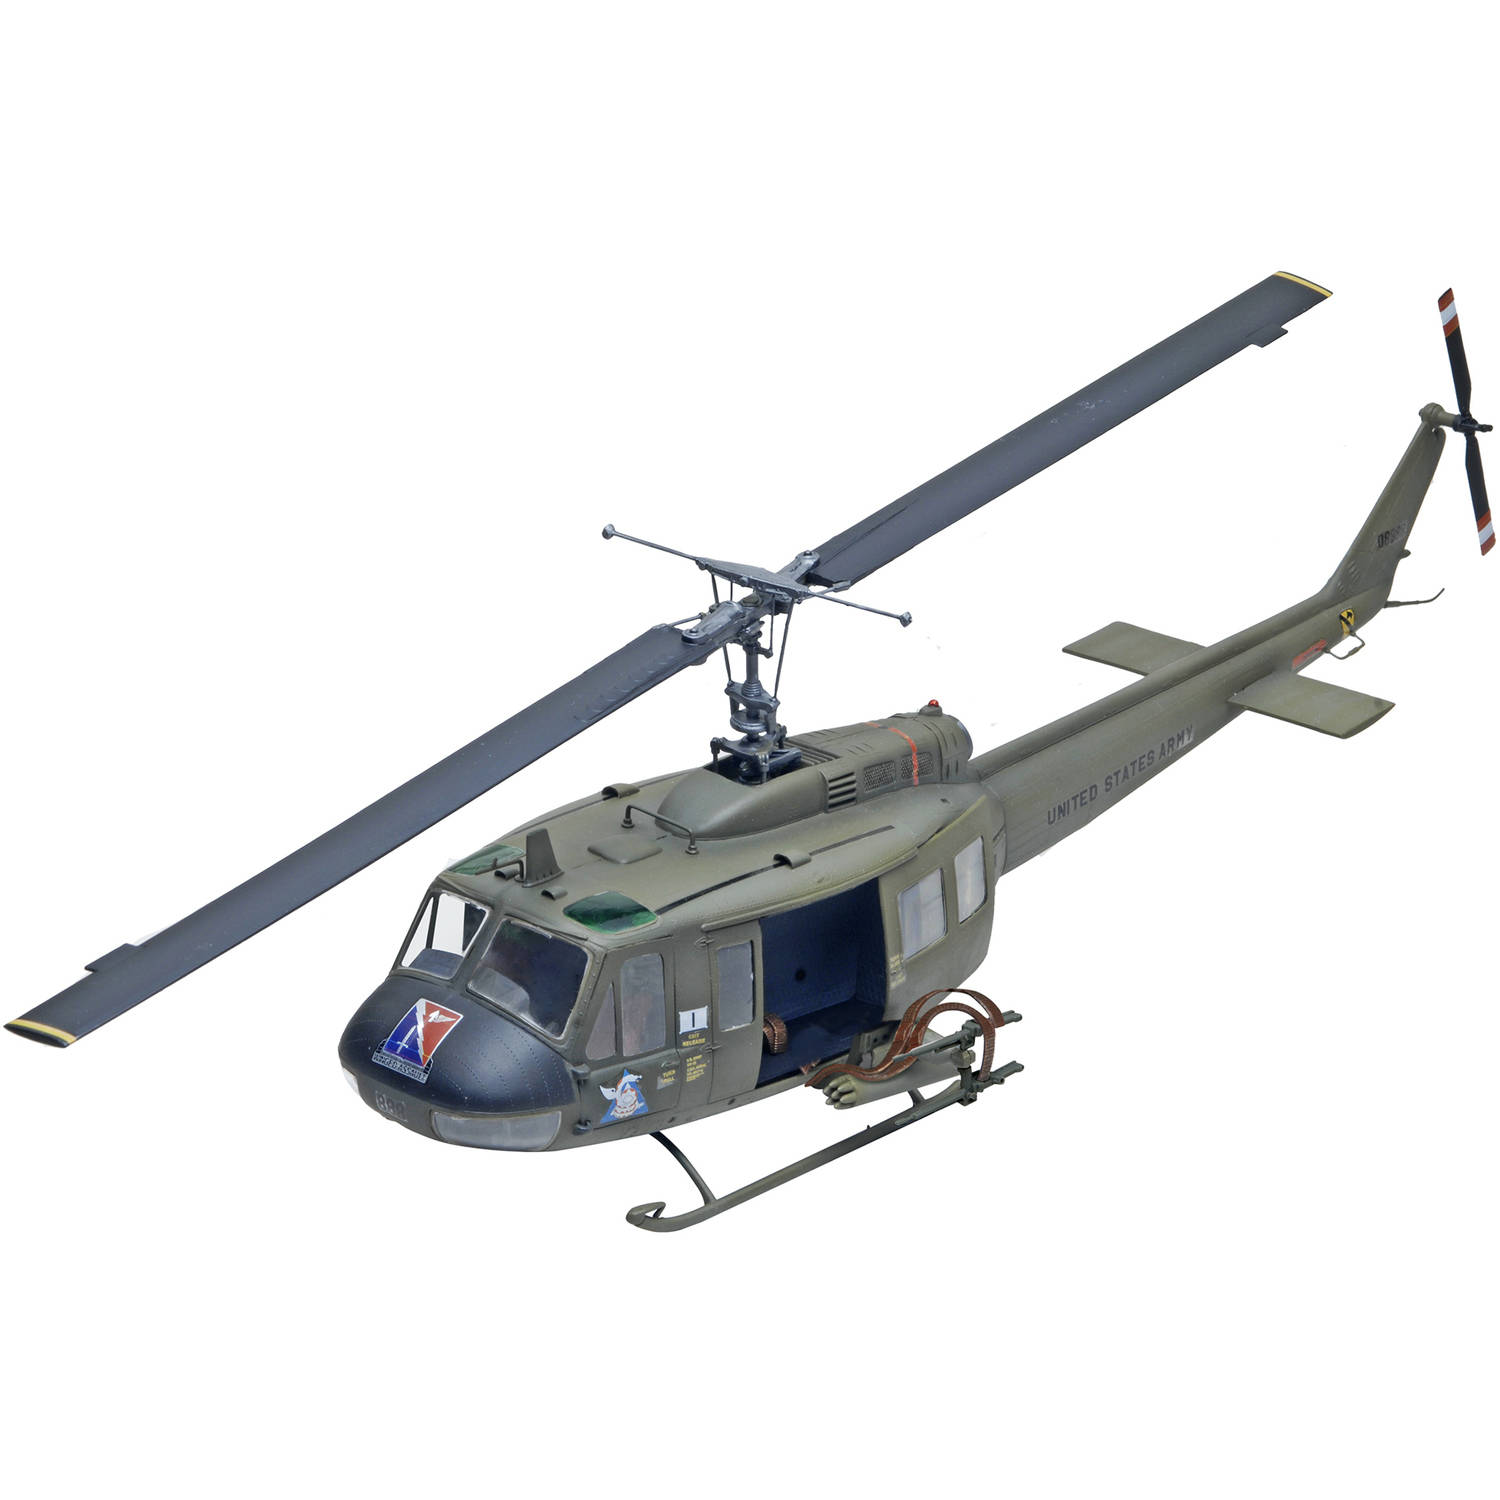 Revell 1:32 UH-1D Huey Gunship Plastic Model Kit by Revell